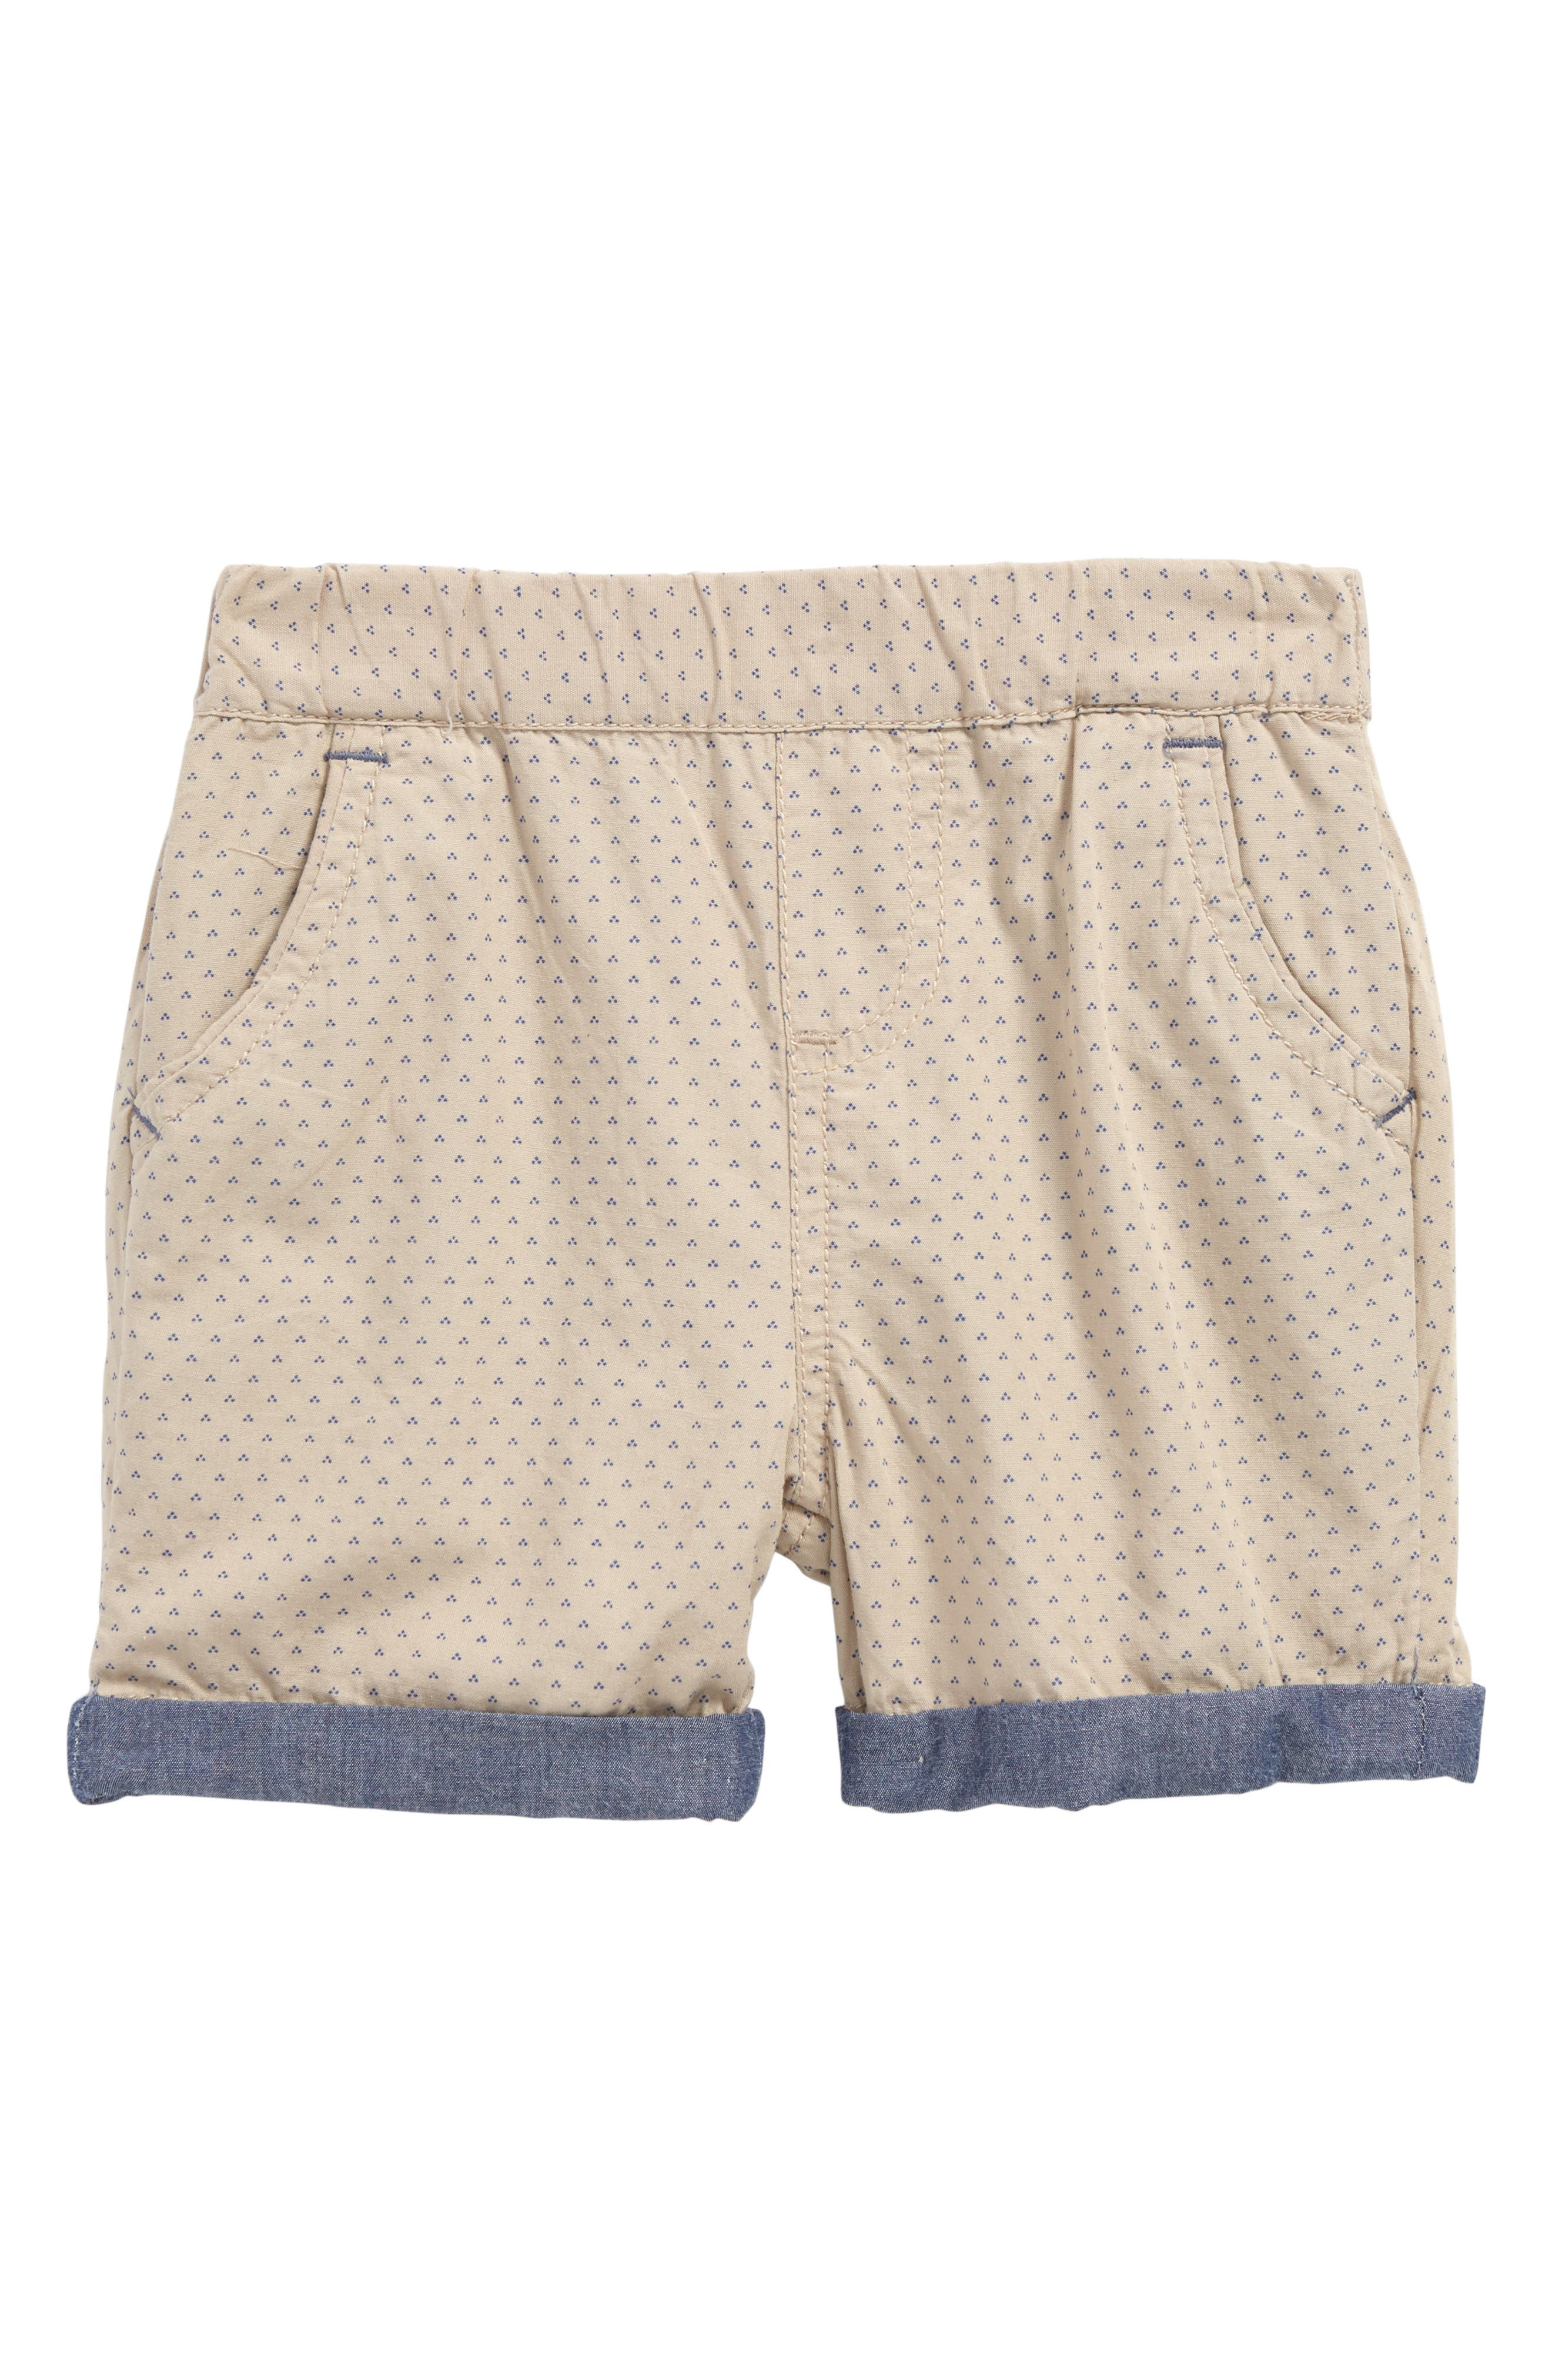 Drew Shorts,                             Main thumbnail 1, color,                             250